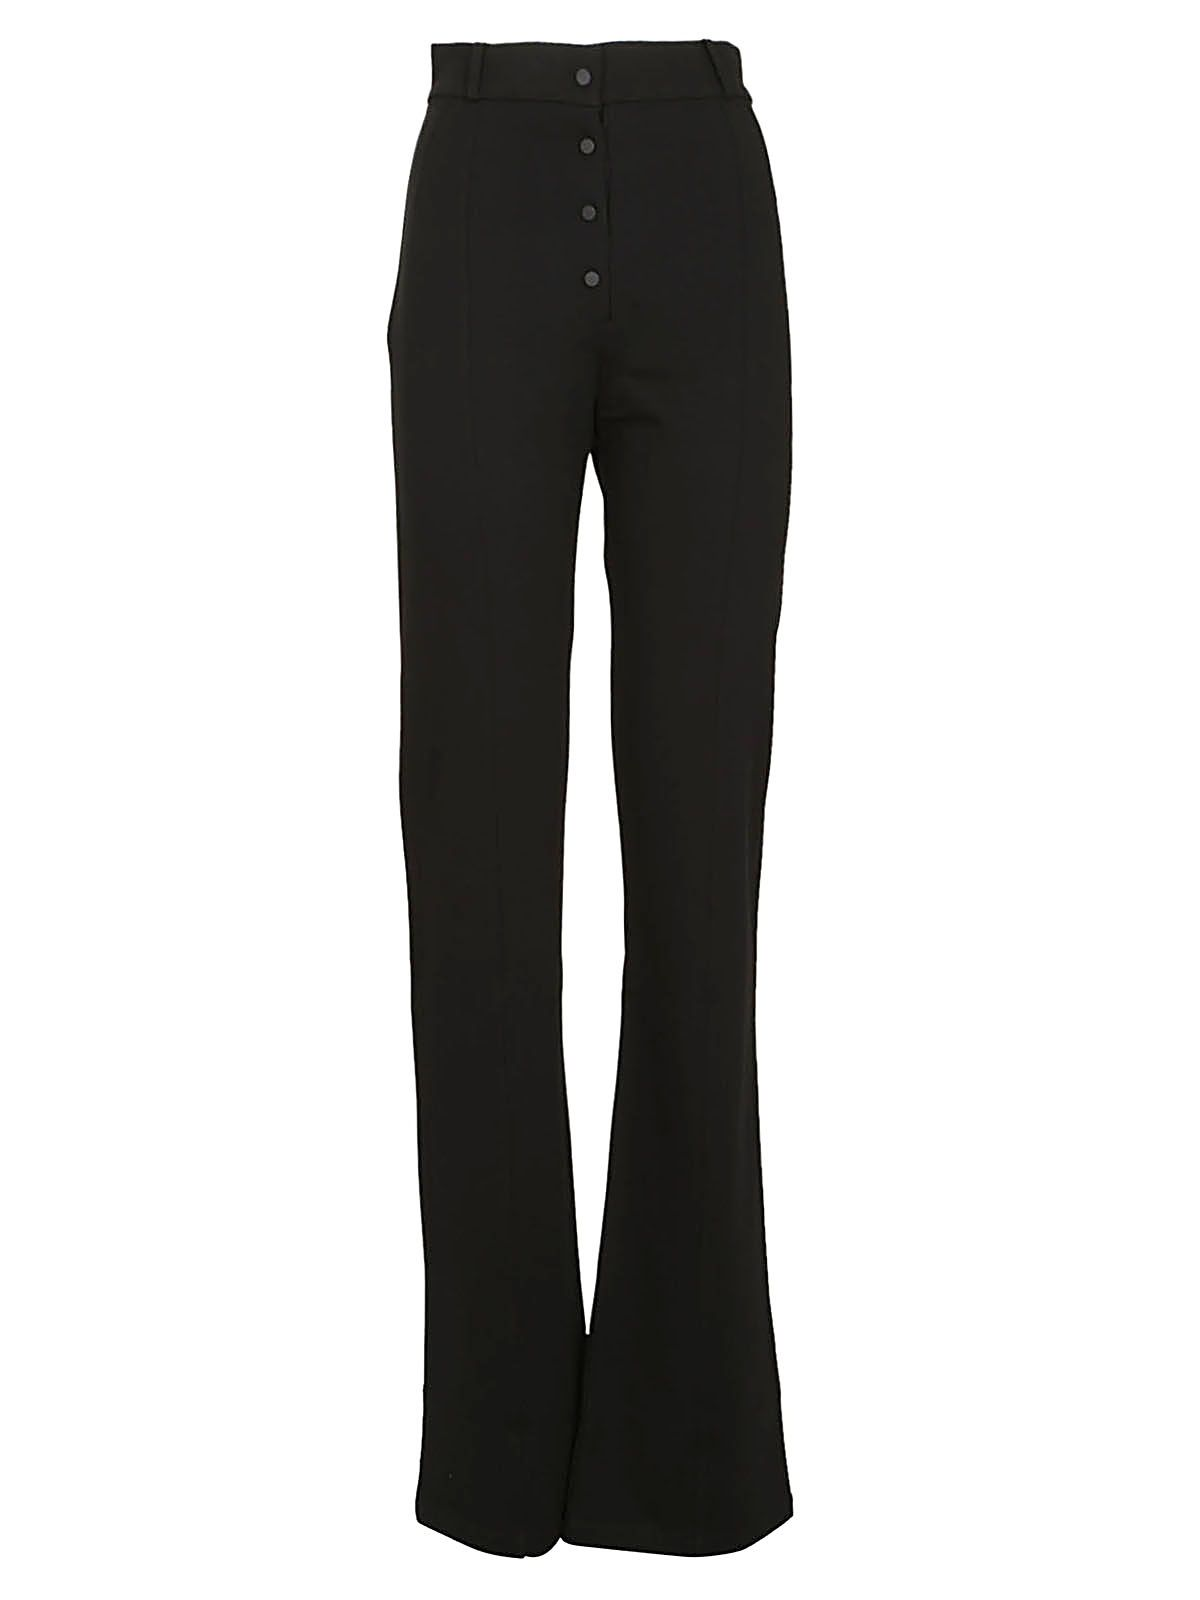 Paco Rabanne Flared Trousers